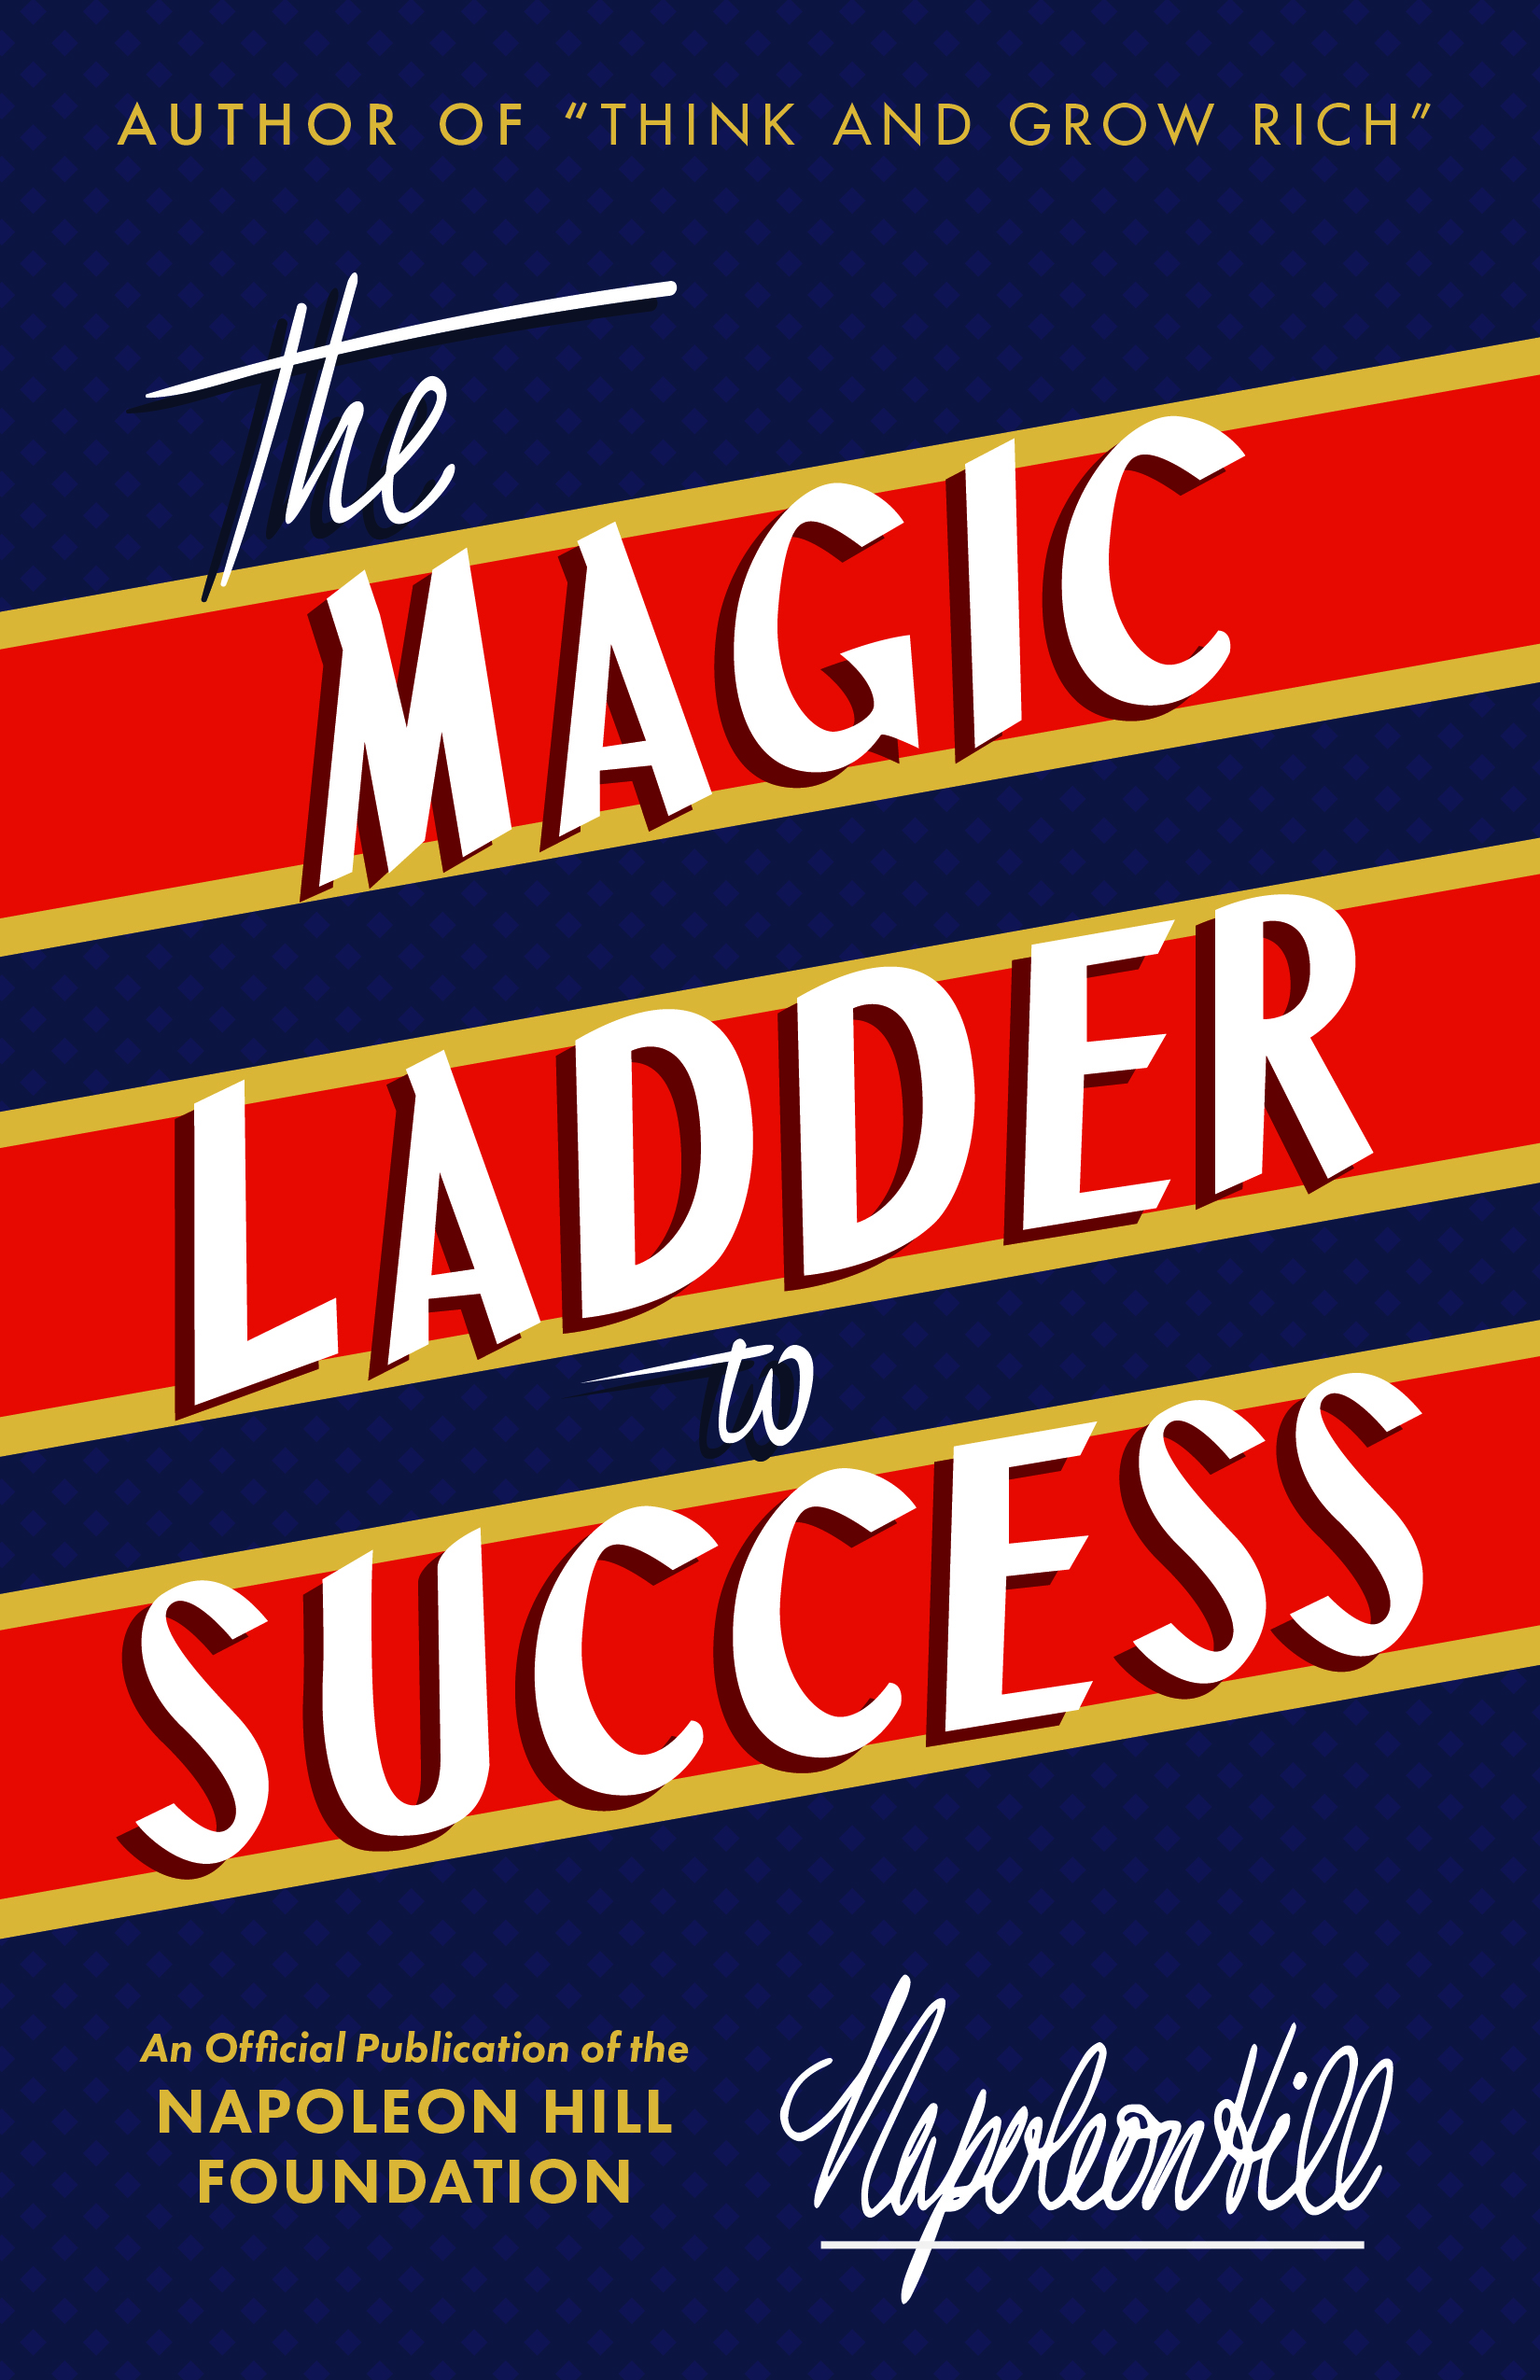 The Magic Ladder to Success - By Napoleon Hill